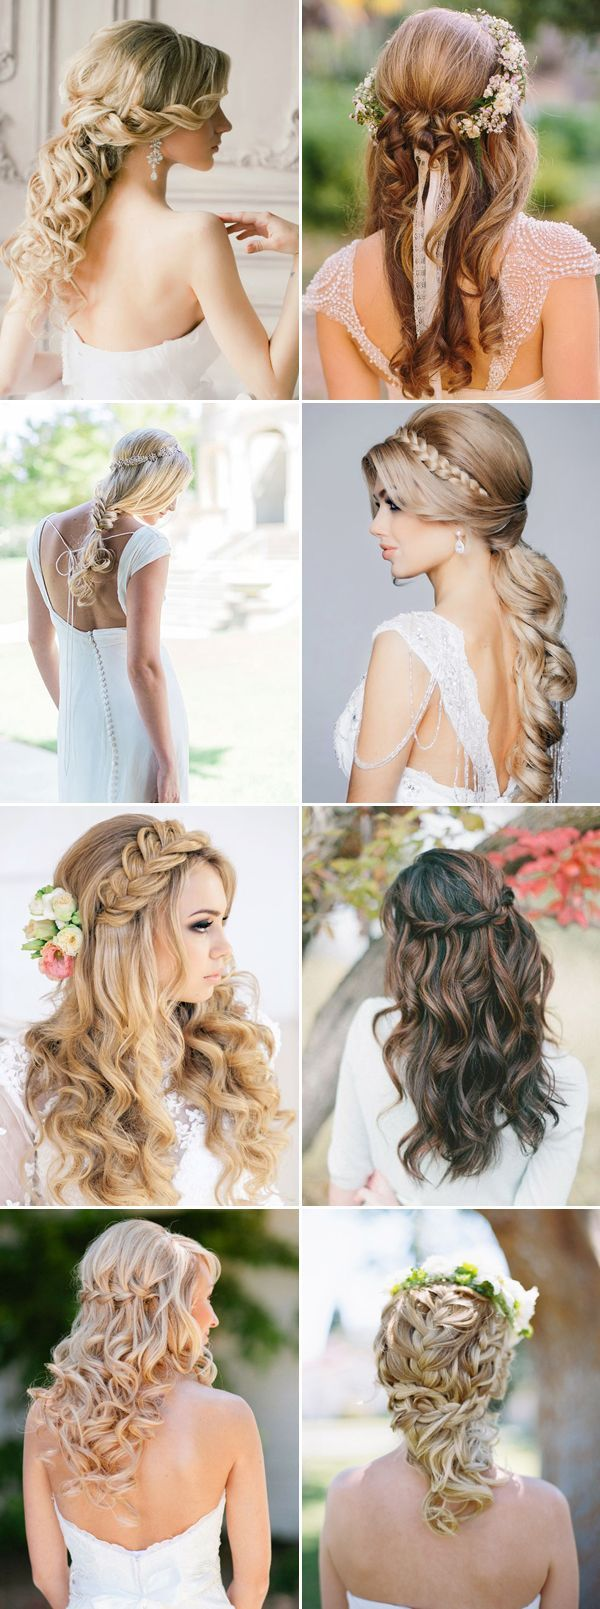 18 best Hairstyles images on Pinterest | Amazing hairstyles, Braided ...